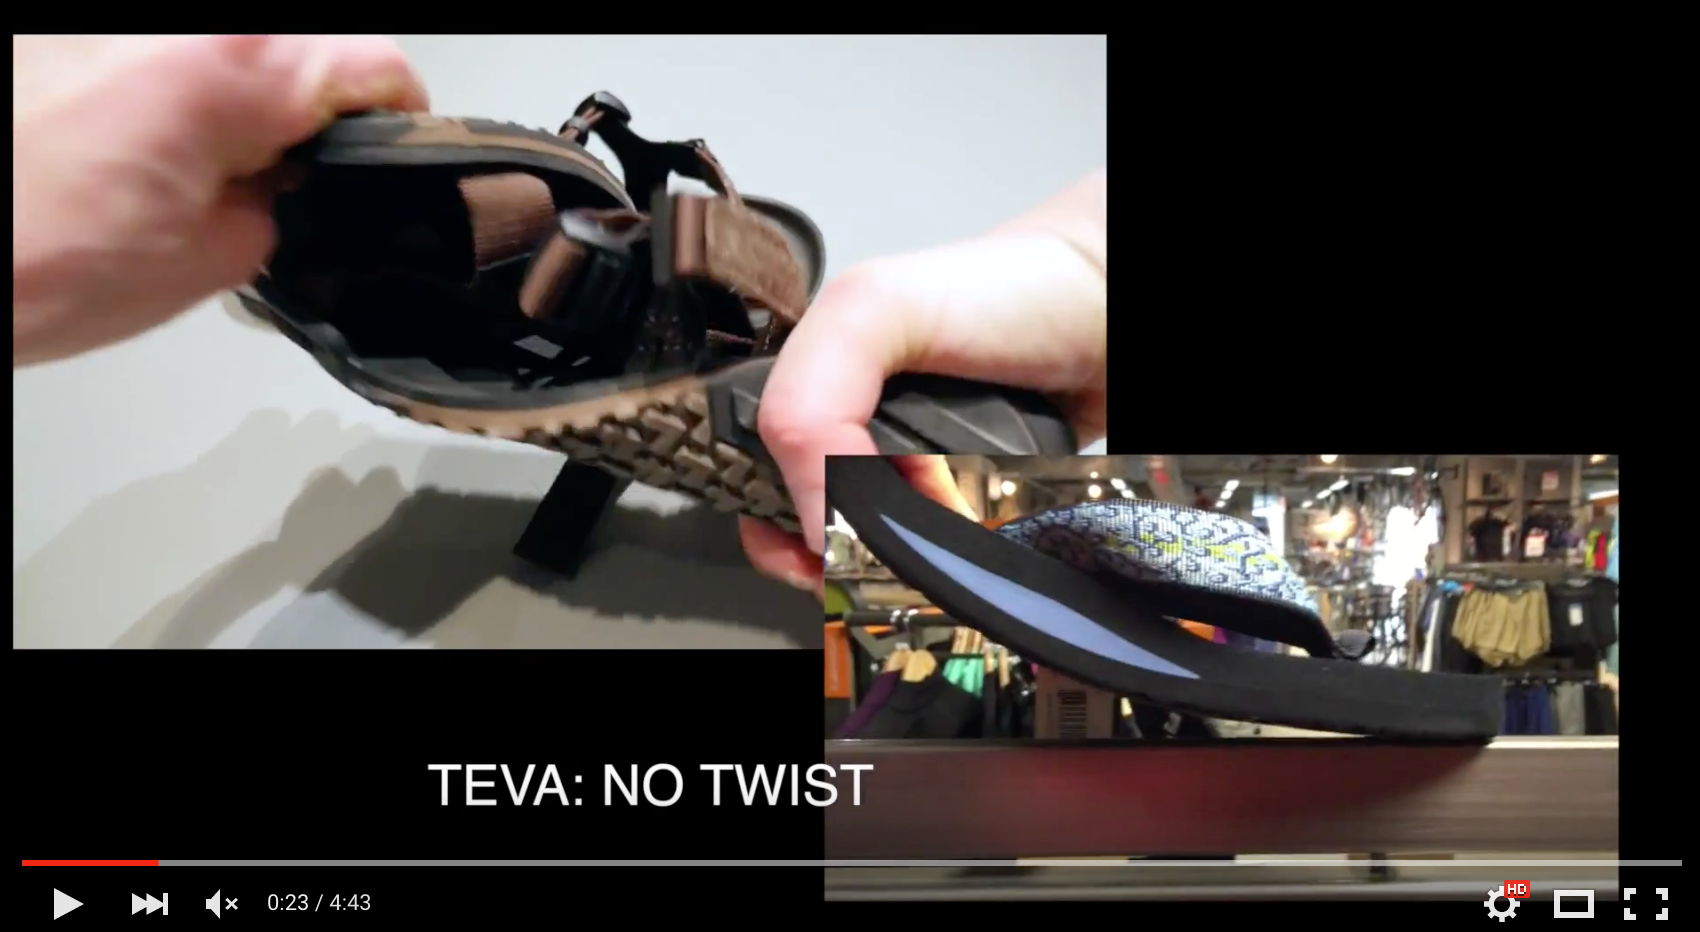 Teva Chaco and Keen Sandals don't twist - Xero Shoes do